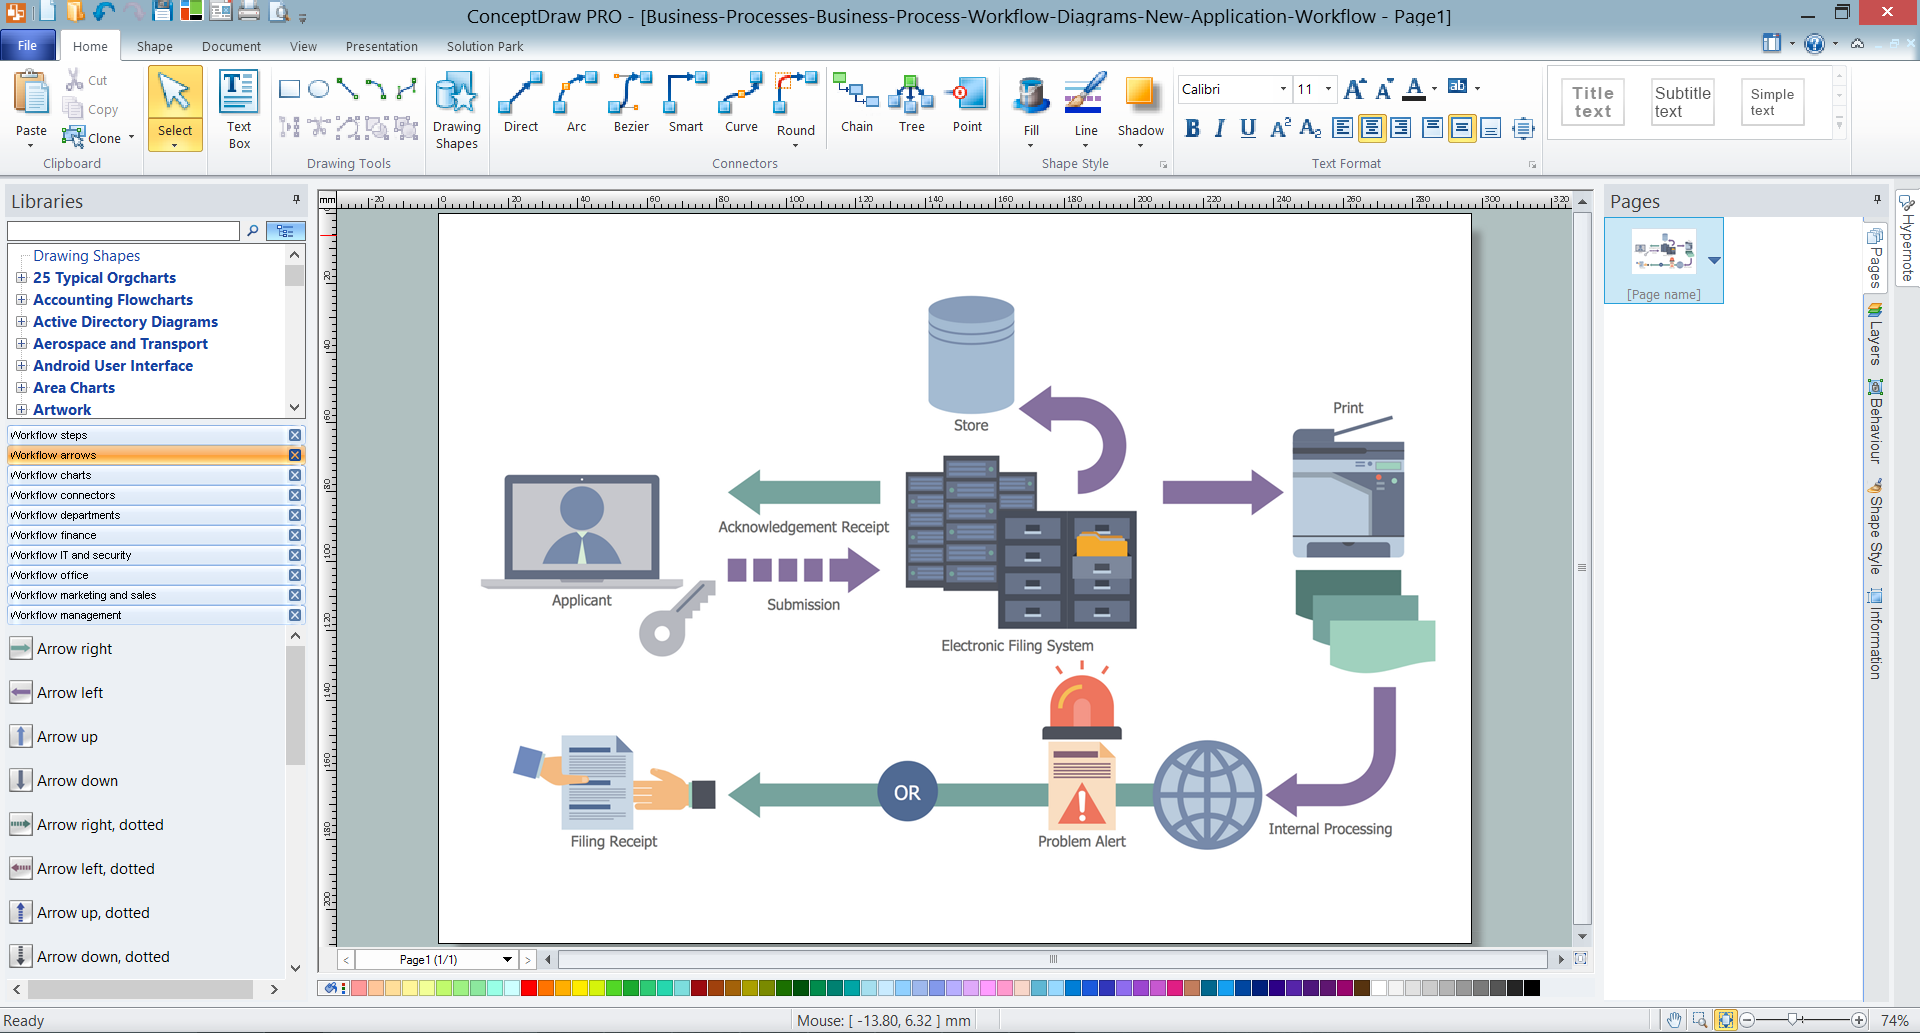 Business Process Workflow Diagram in ConceptDraw DIAGRAM v12  title=